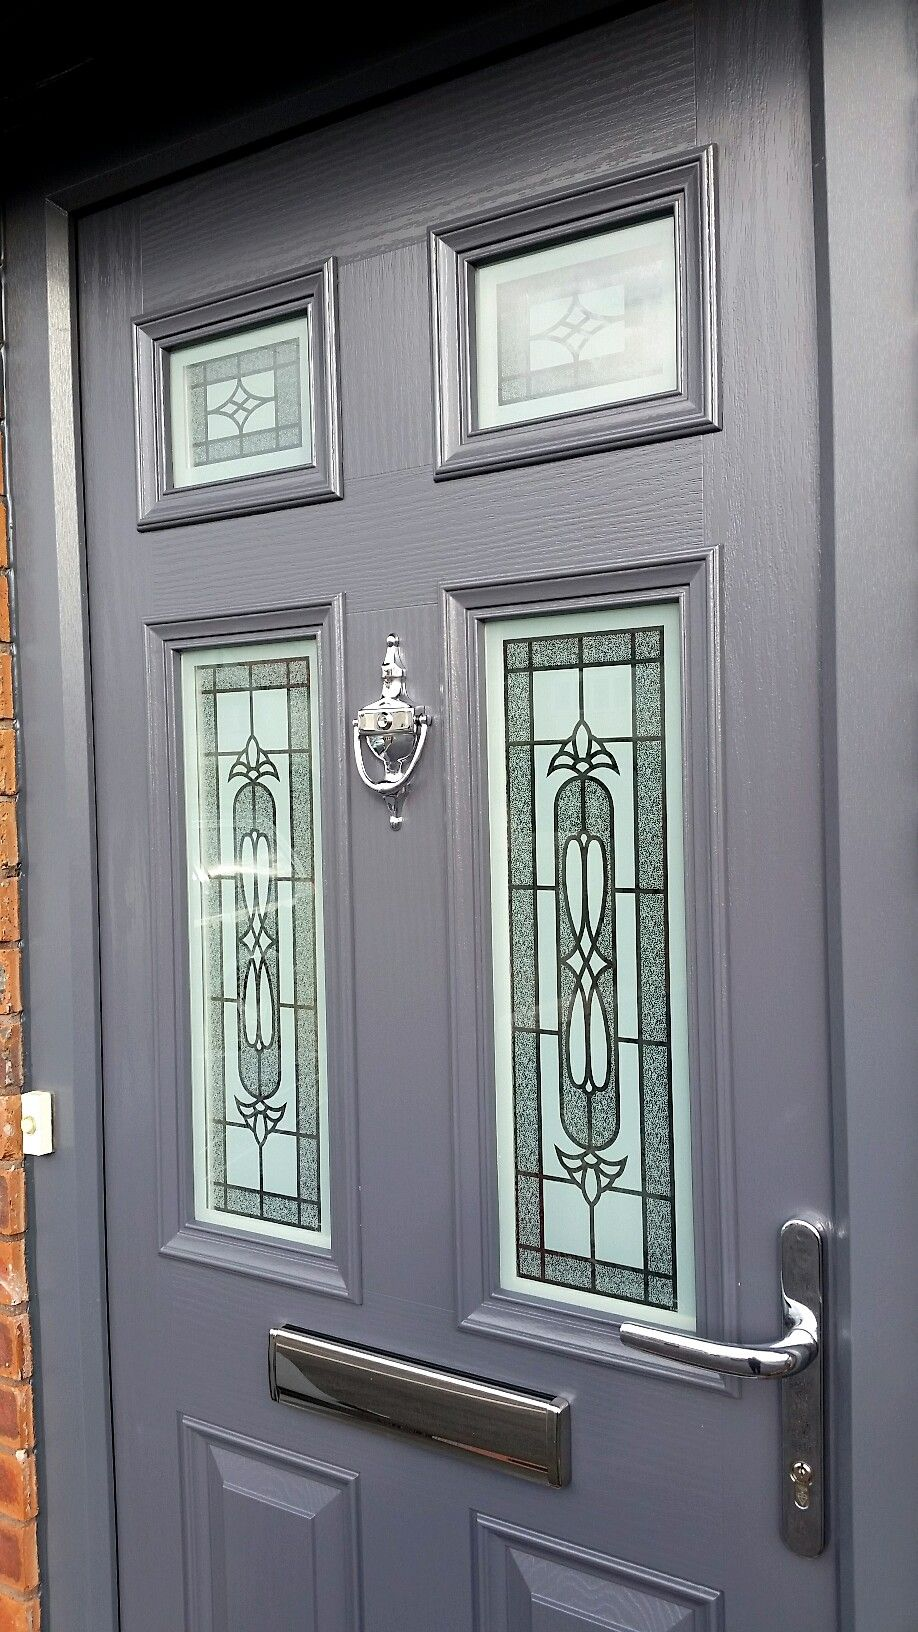 Silvaner glass design in a slate grey front door from www ...